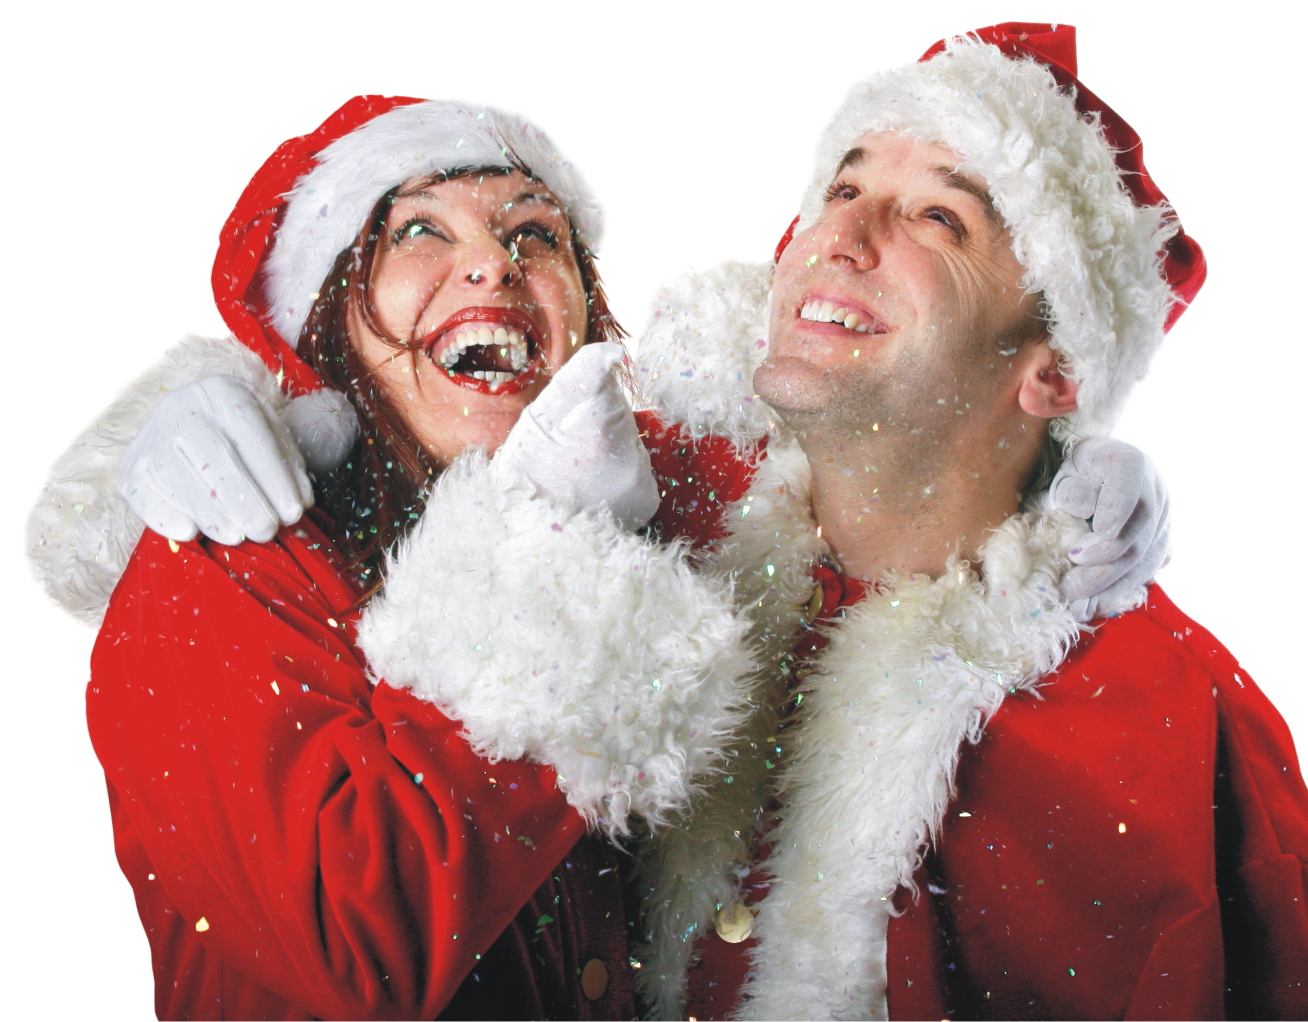 http://2.bp.blogspot.com/_qCfXnBMknJE/TQC7s45MBJI/AAAAAAAABCY/d41Hy5zRVVk/s1600/Christmas-couple-photo-wallpaper.png